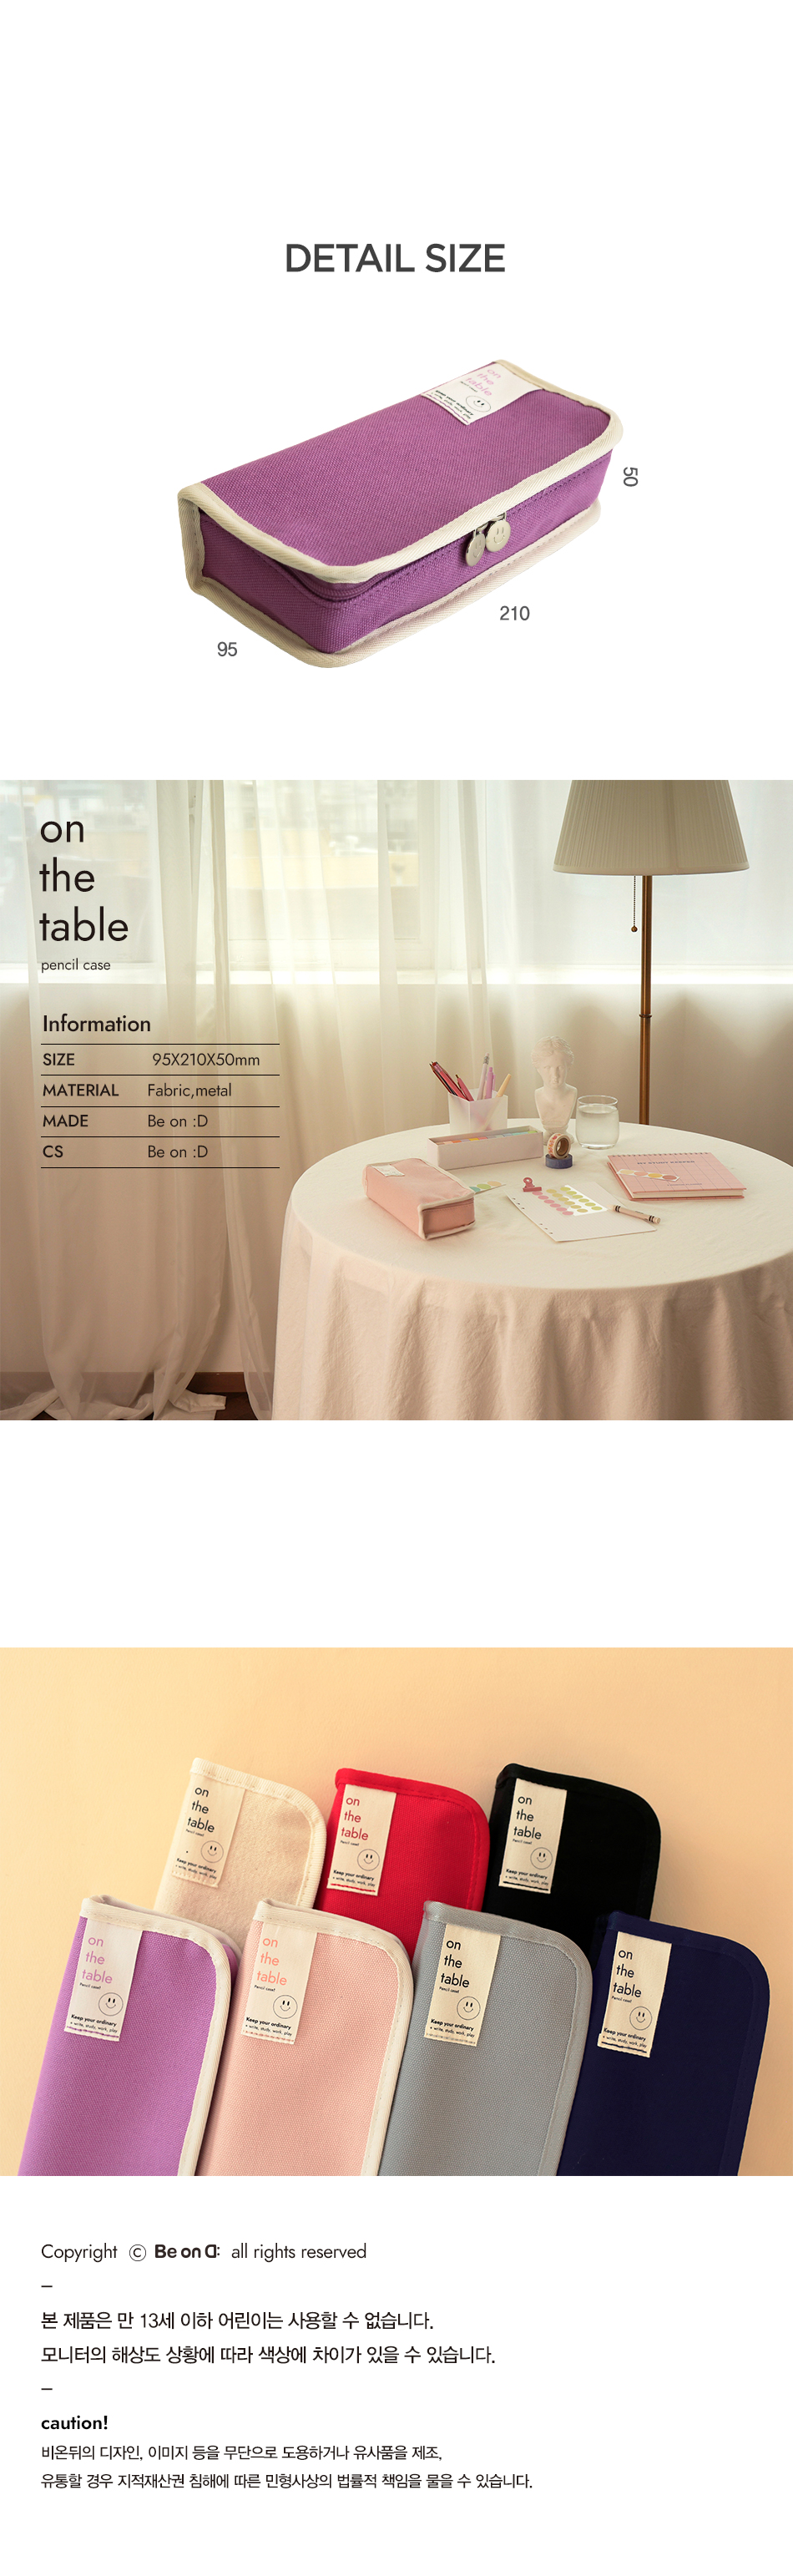 on the table 펜케이스 (new color)16,800원-비온뒤디자인문구, 필통/파우치, 패브릭필통, 심플바보사랑on the table 펜케이스 (new color)16,800원-비온뒤디자인문구, 필통/파우치, 패브릭필통, 심플바보사랑